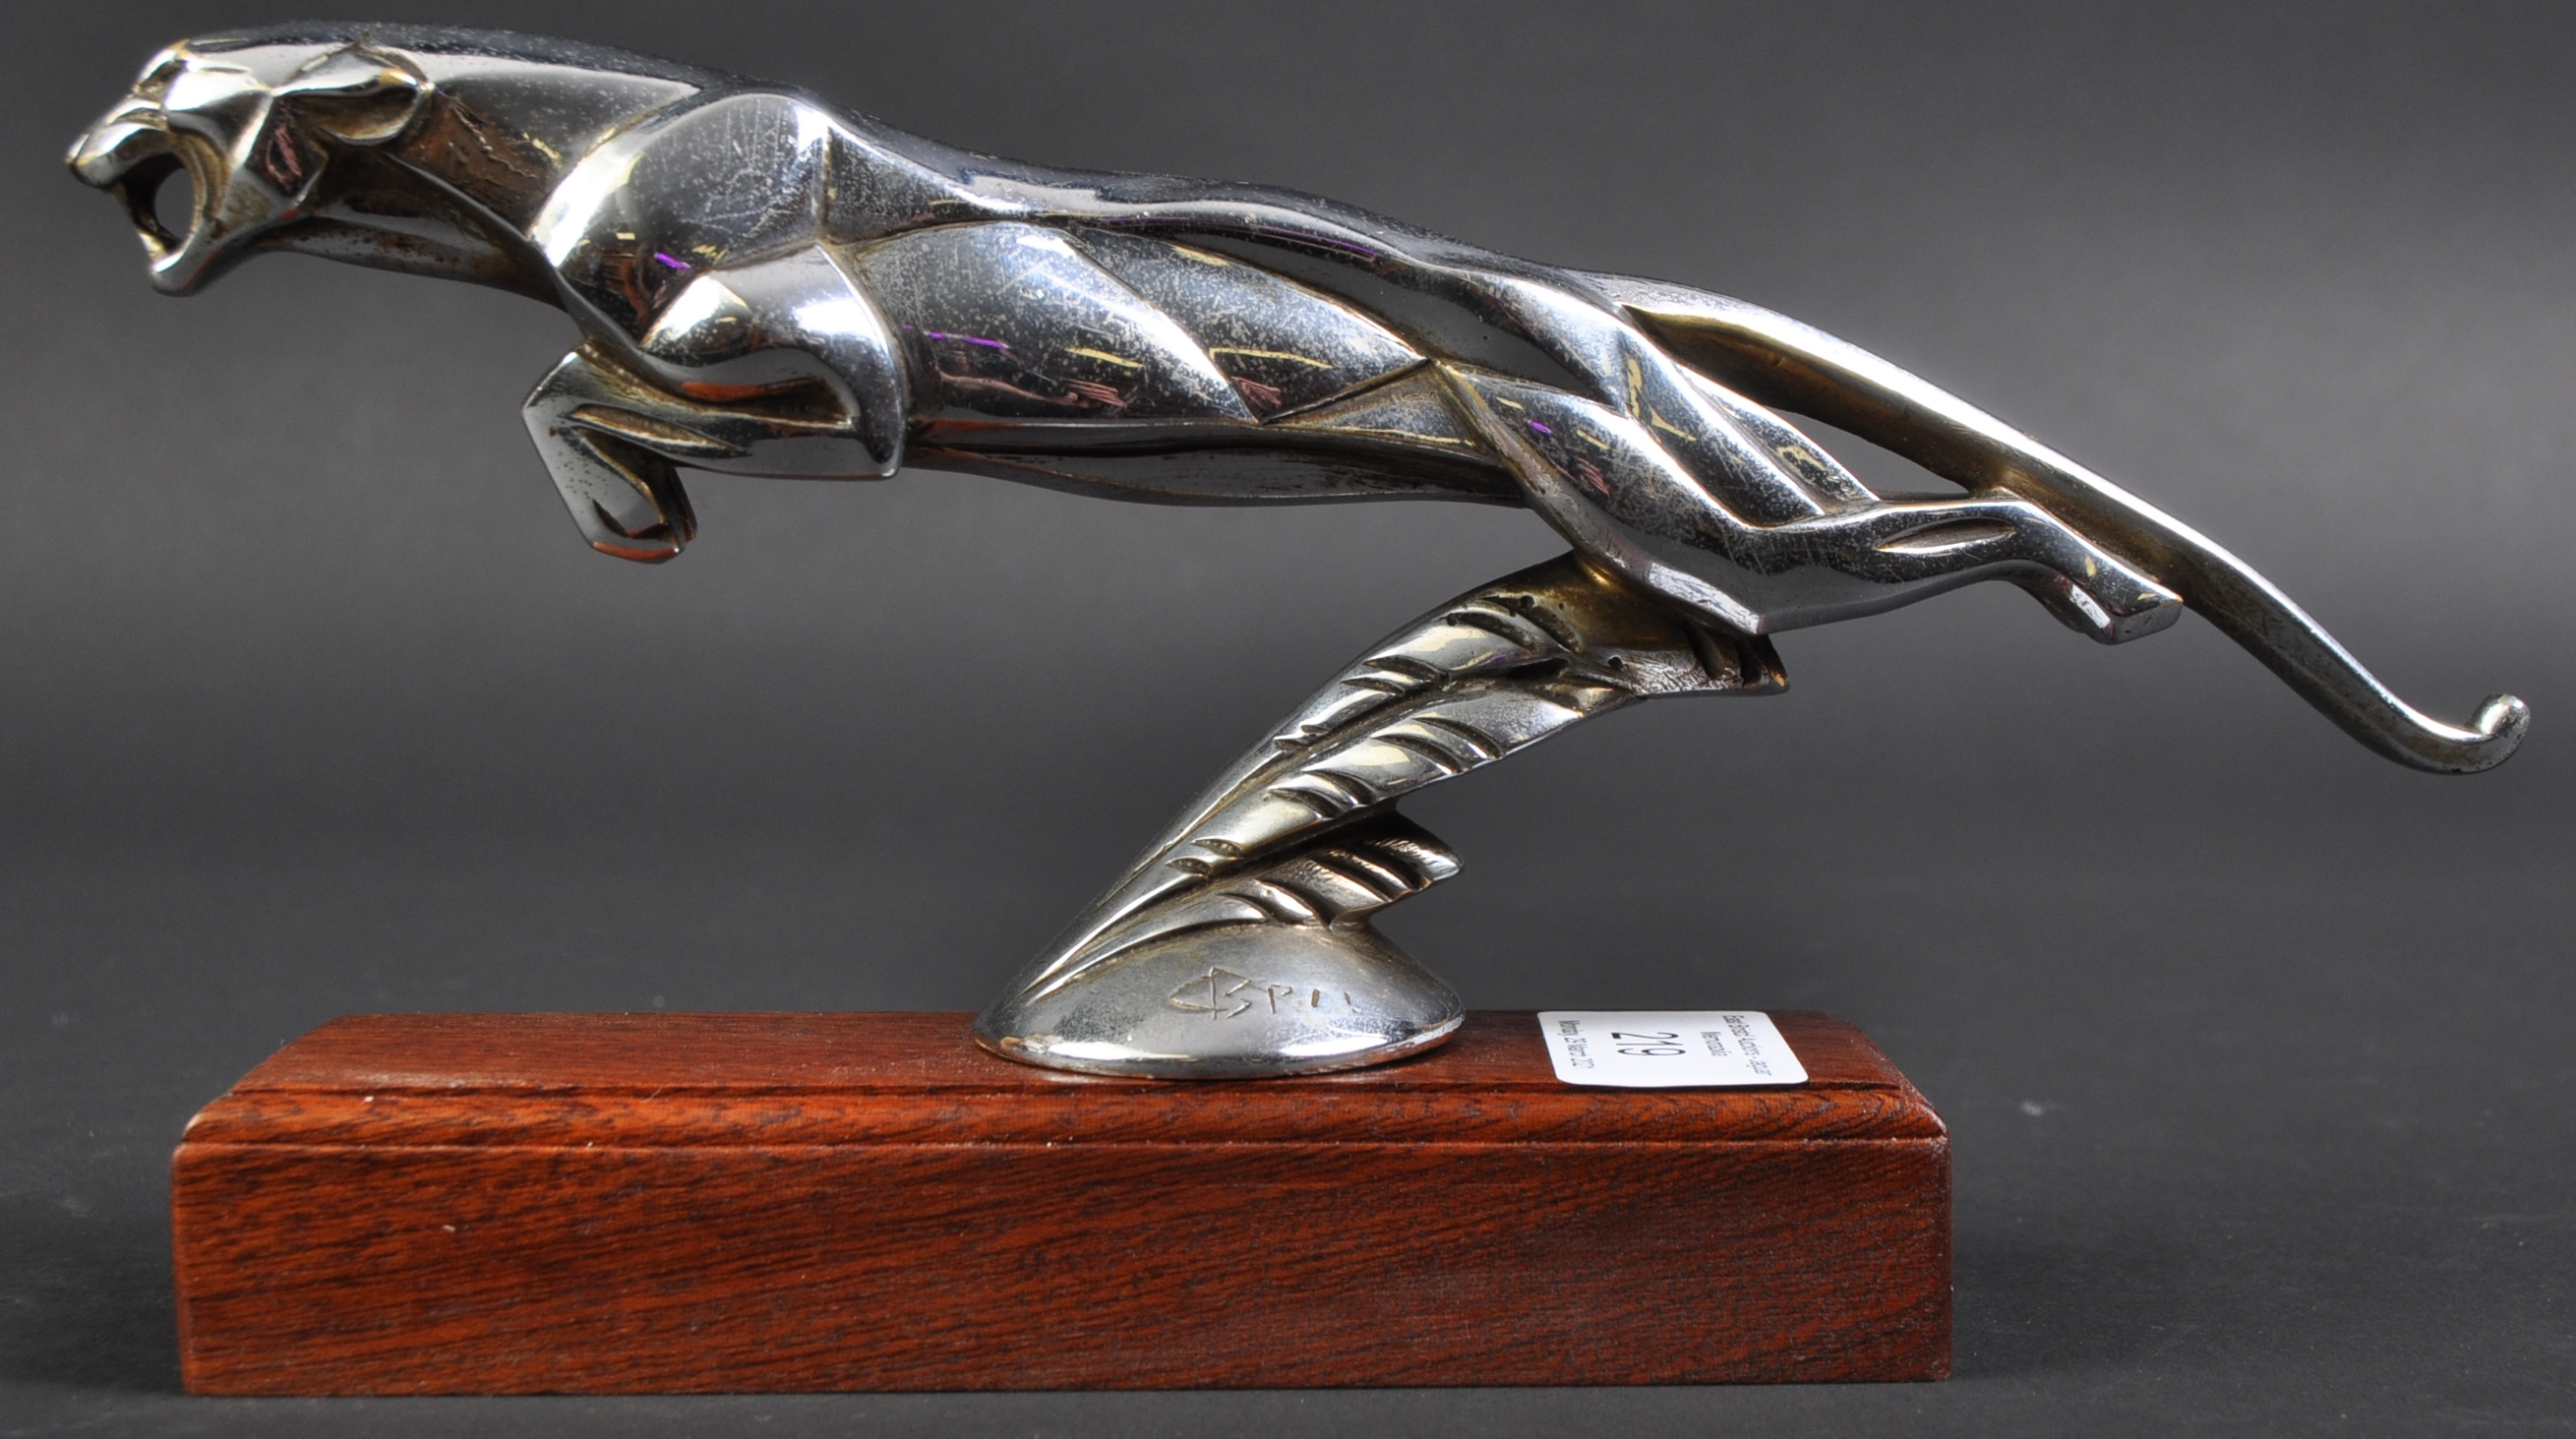 C1920S ' LEAPING JAGUAR ' CAR MASCOT BY CASIMIR BRAU - Image 3 of 6